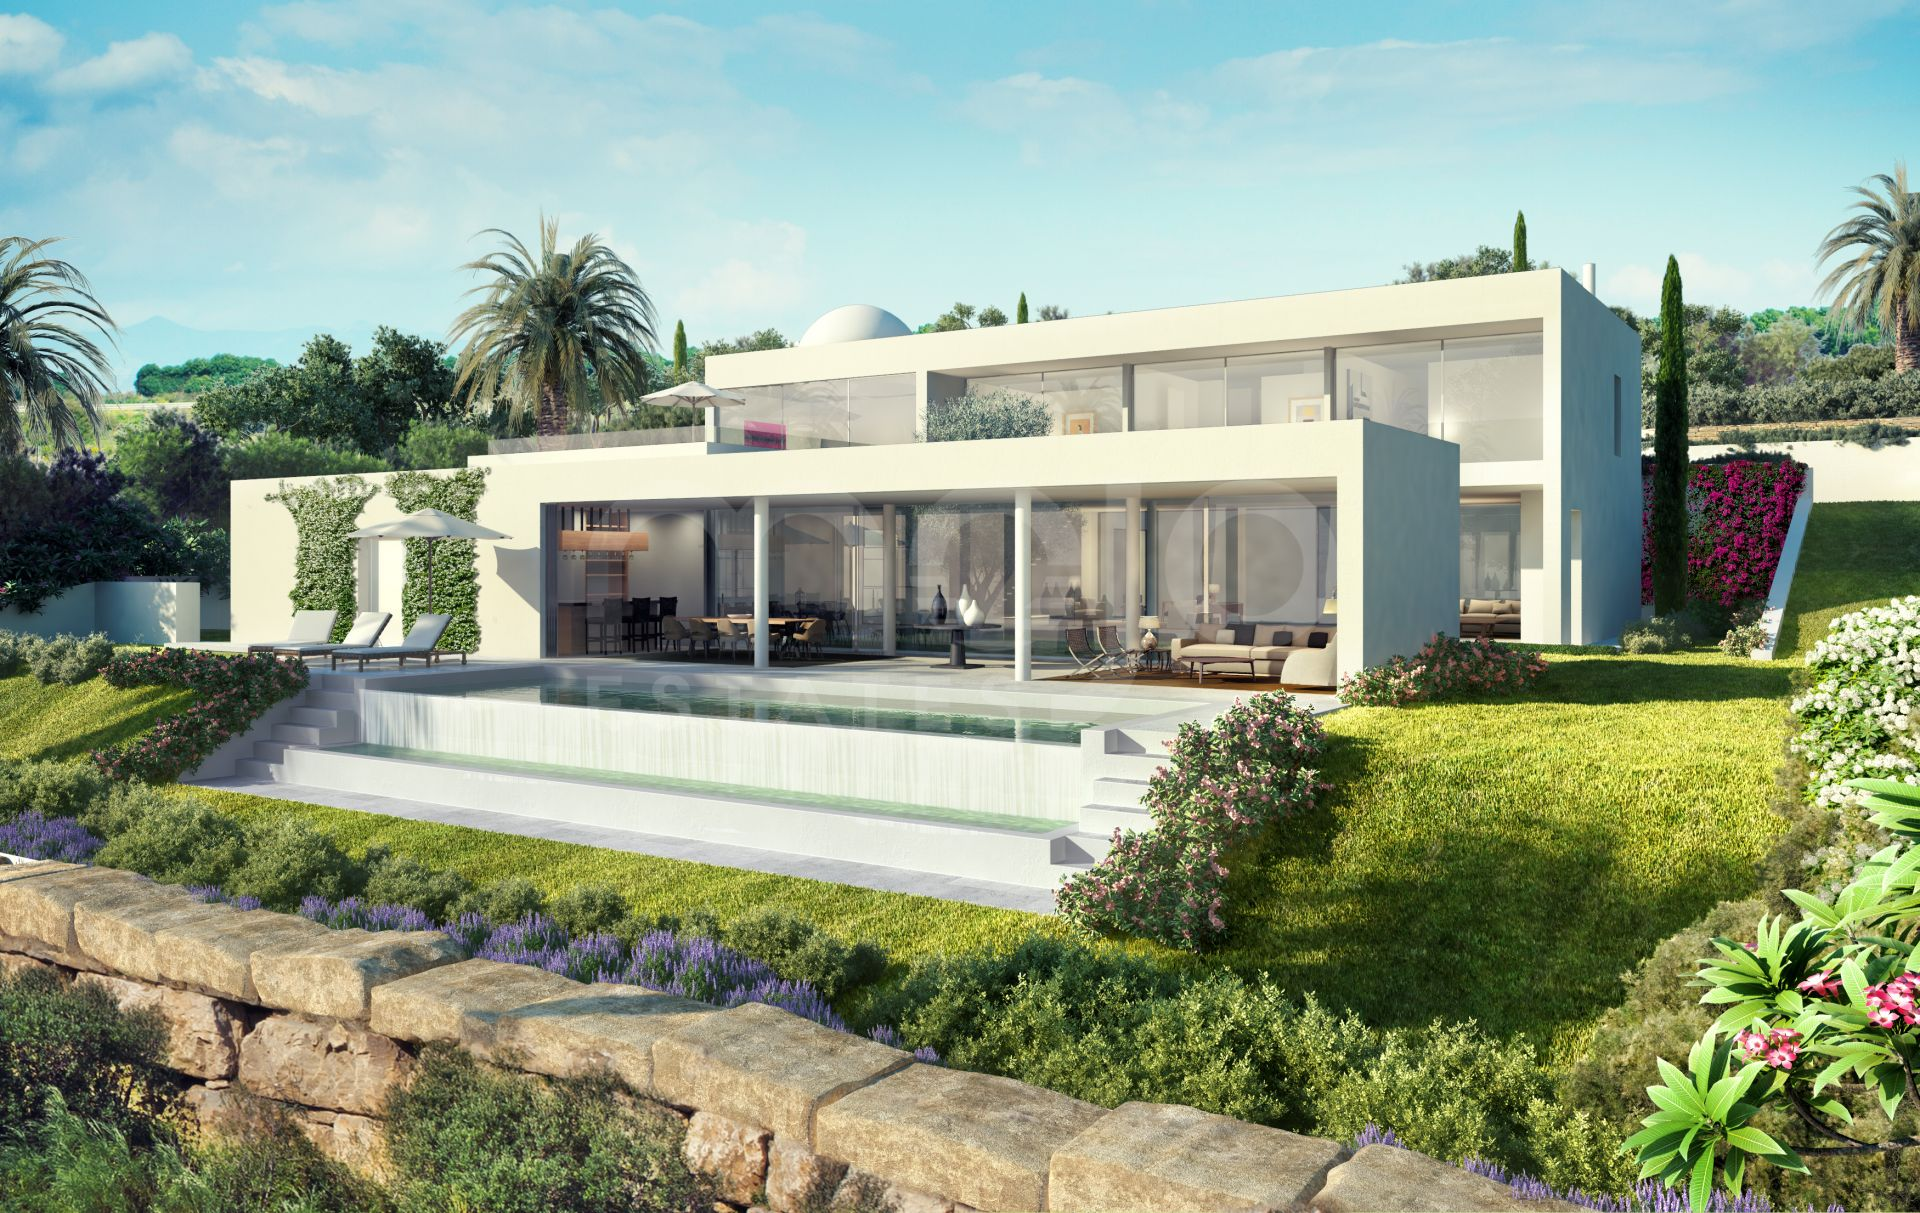 SPECTACULAR CONTEMPORARY LUXURY VILLA FRONTLINE GOLF IN EXCLUSIVE FINCA CORTESIN, CASARES